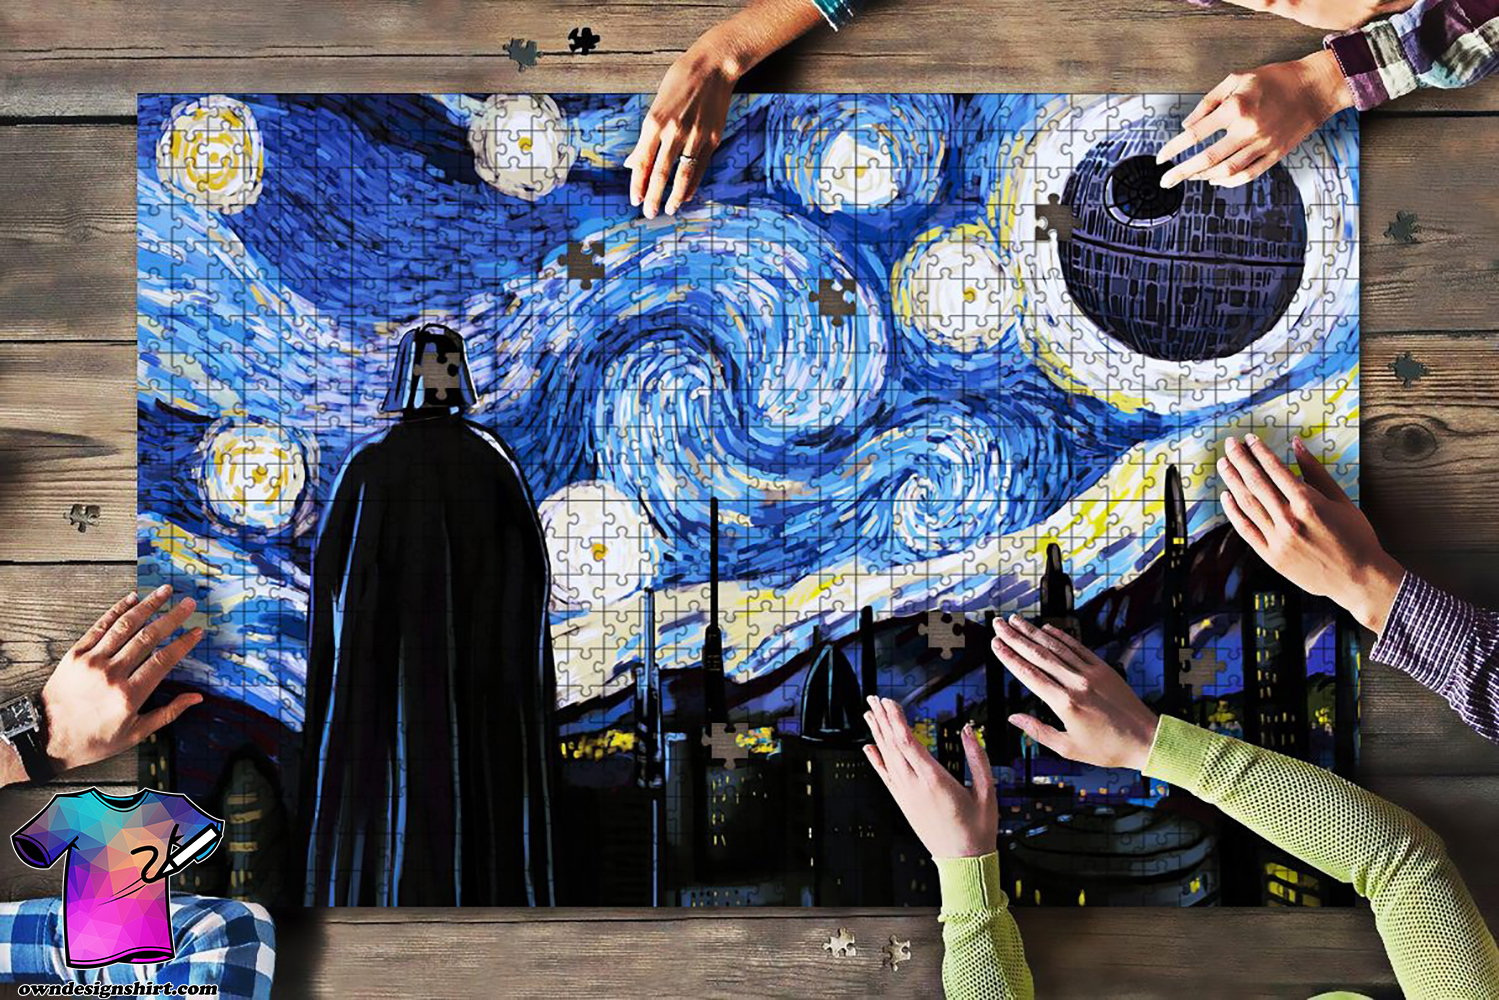 Vincent van gogh starry night darth vader and death star jigsaw puzzle